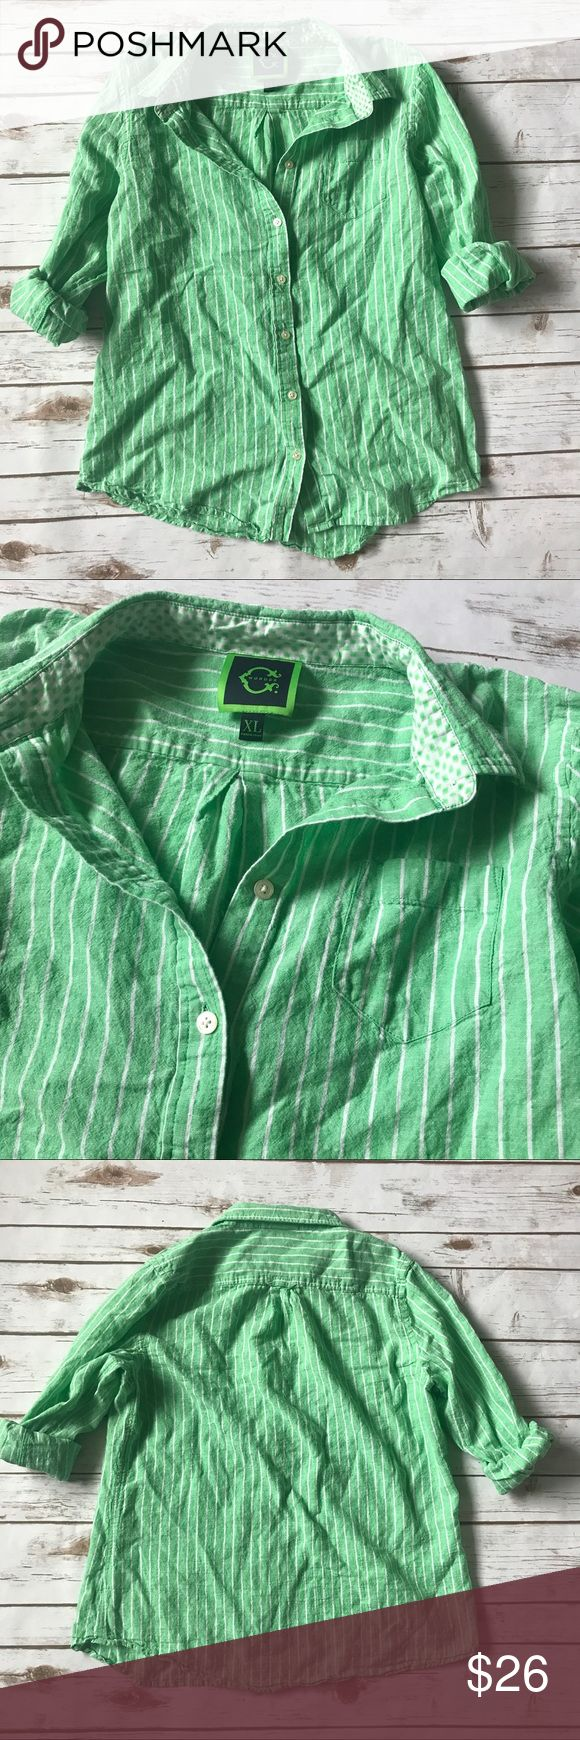 C WONDER Button Down with Green & White Stripes C. Wonder top with green and white stripes. Size XL. Roll up sleeves or wear down. Sold at C Wonder stores and QVC. C Wonder Tops Button Down Shirts